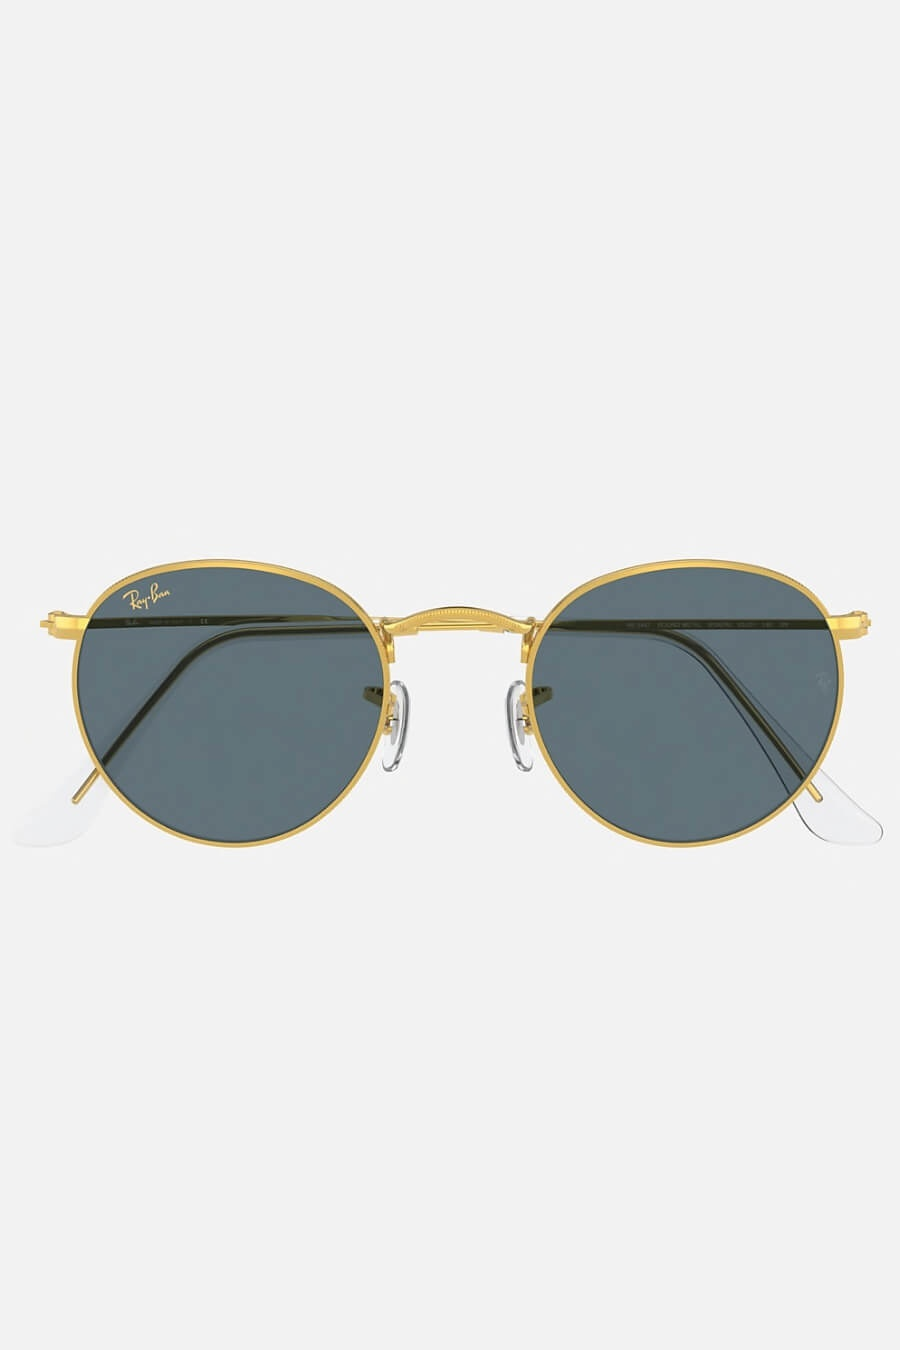 Ray-Ban RB3447 9196R5 Round Metal Legend